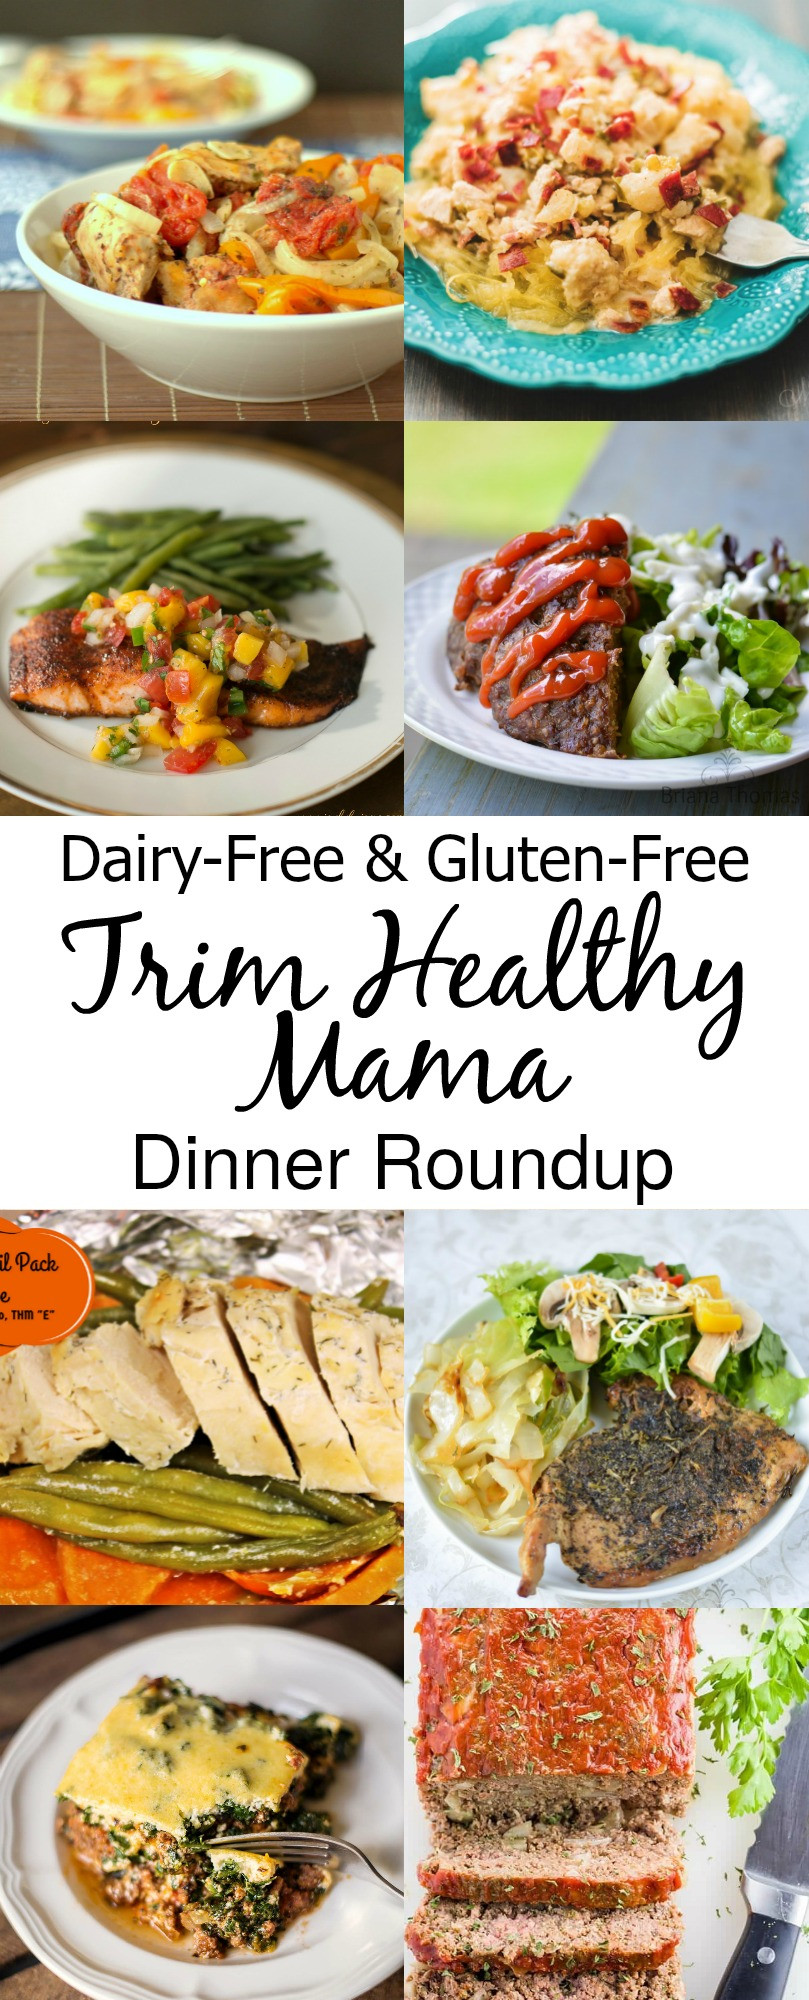 Dairy Free Dinner Recipes  Dairy Free and Gluten Free Trim Healthy Mama Dinners